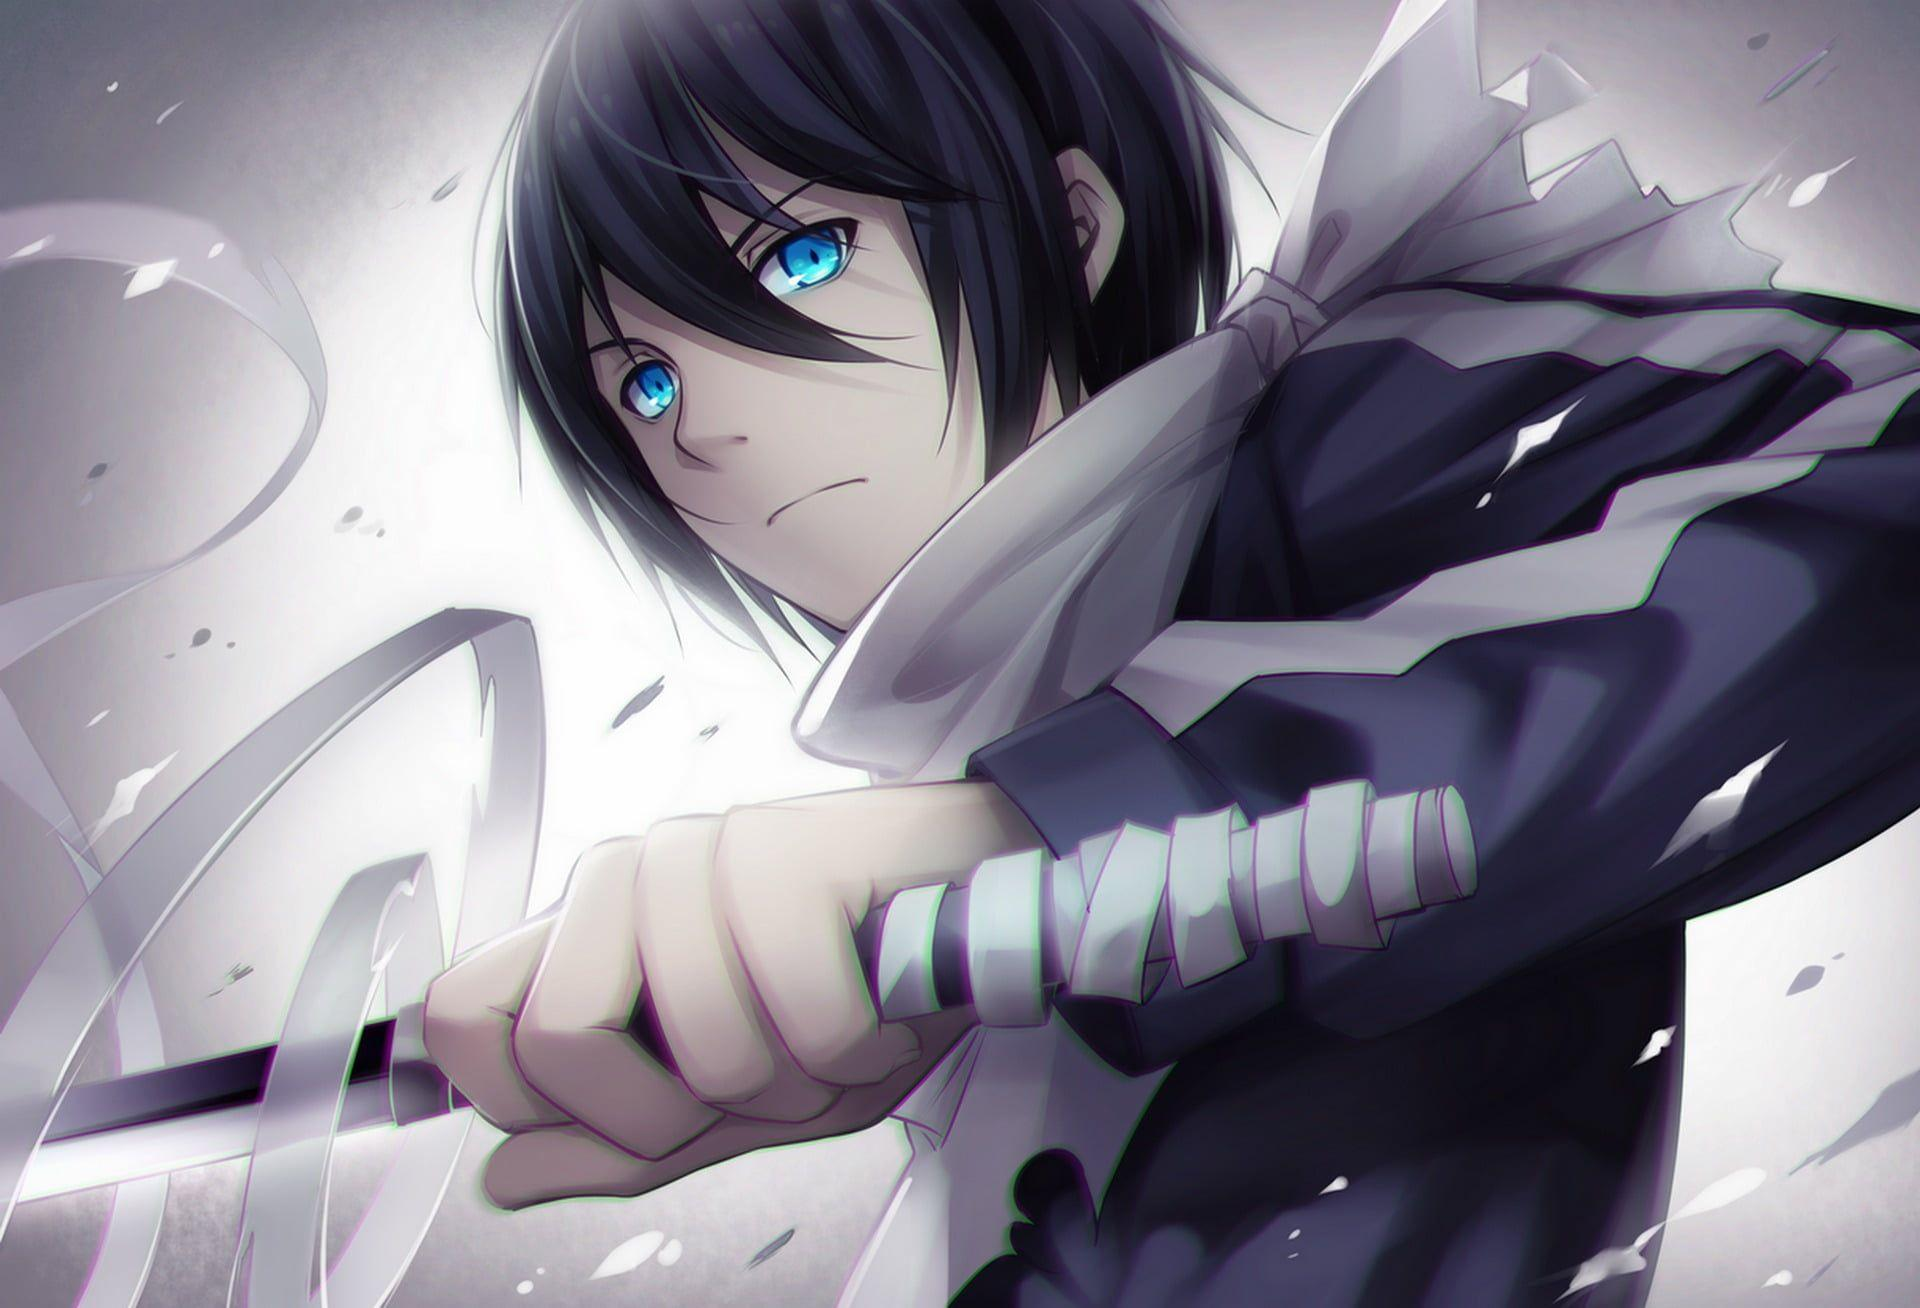 Anime Male Character Holding Sword Hd Wallpaper Wallpaper Flare